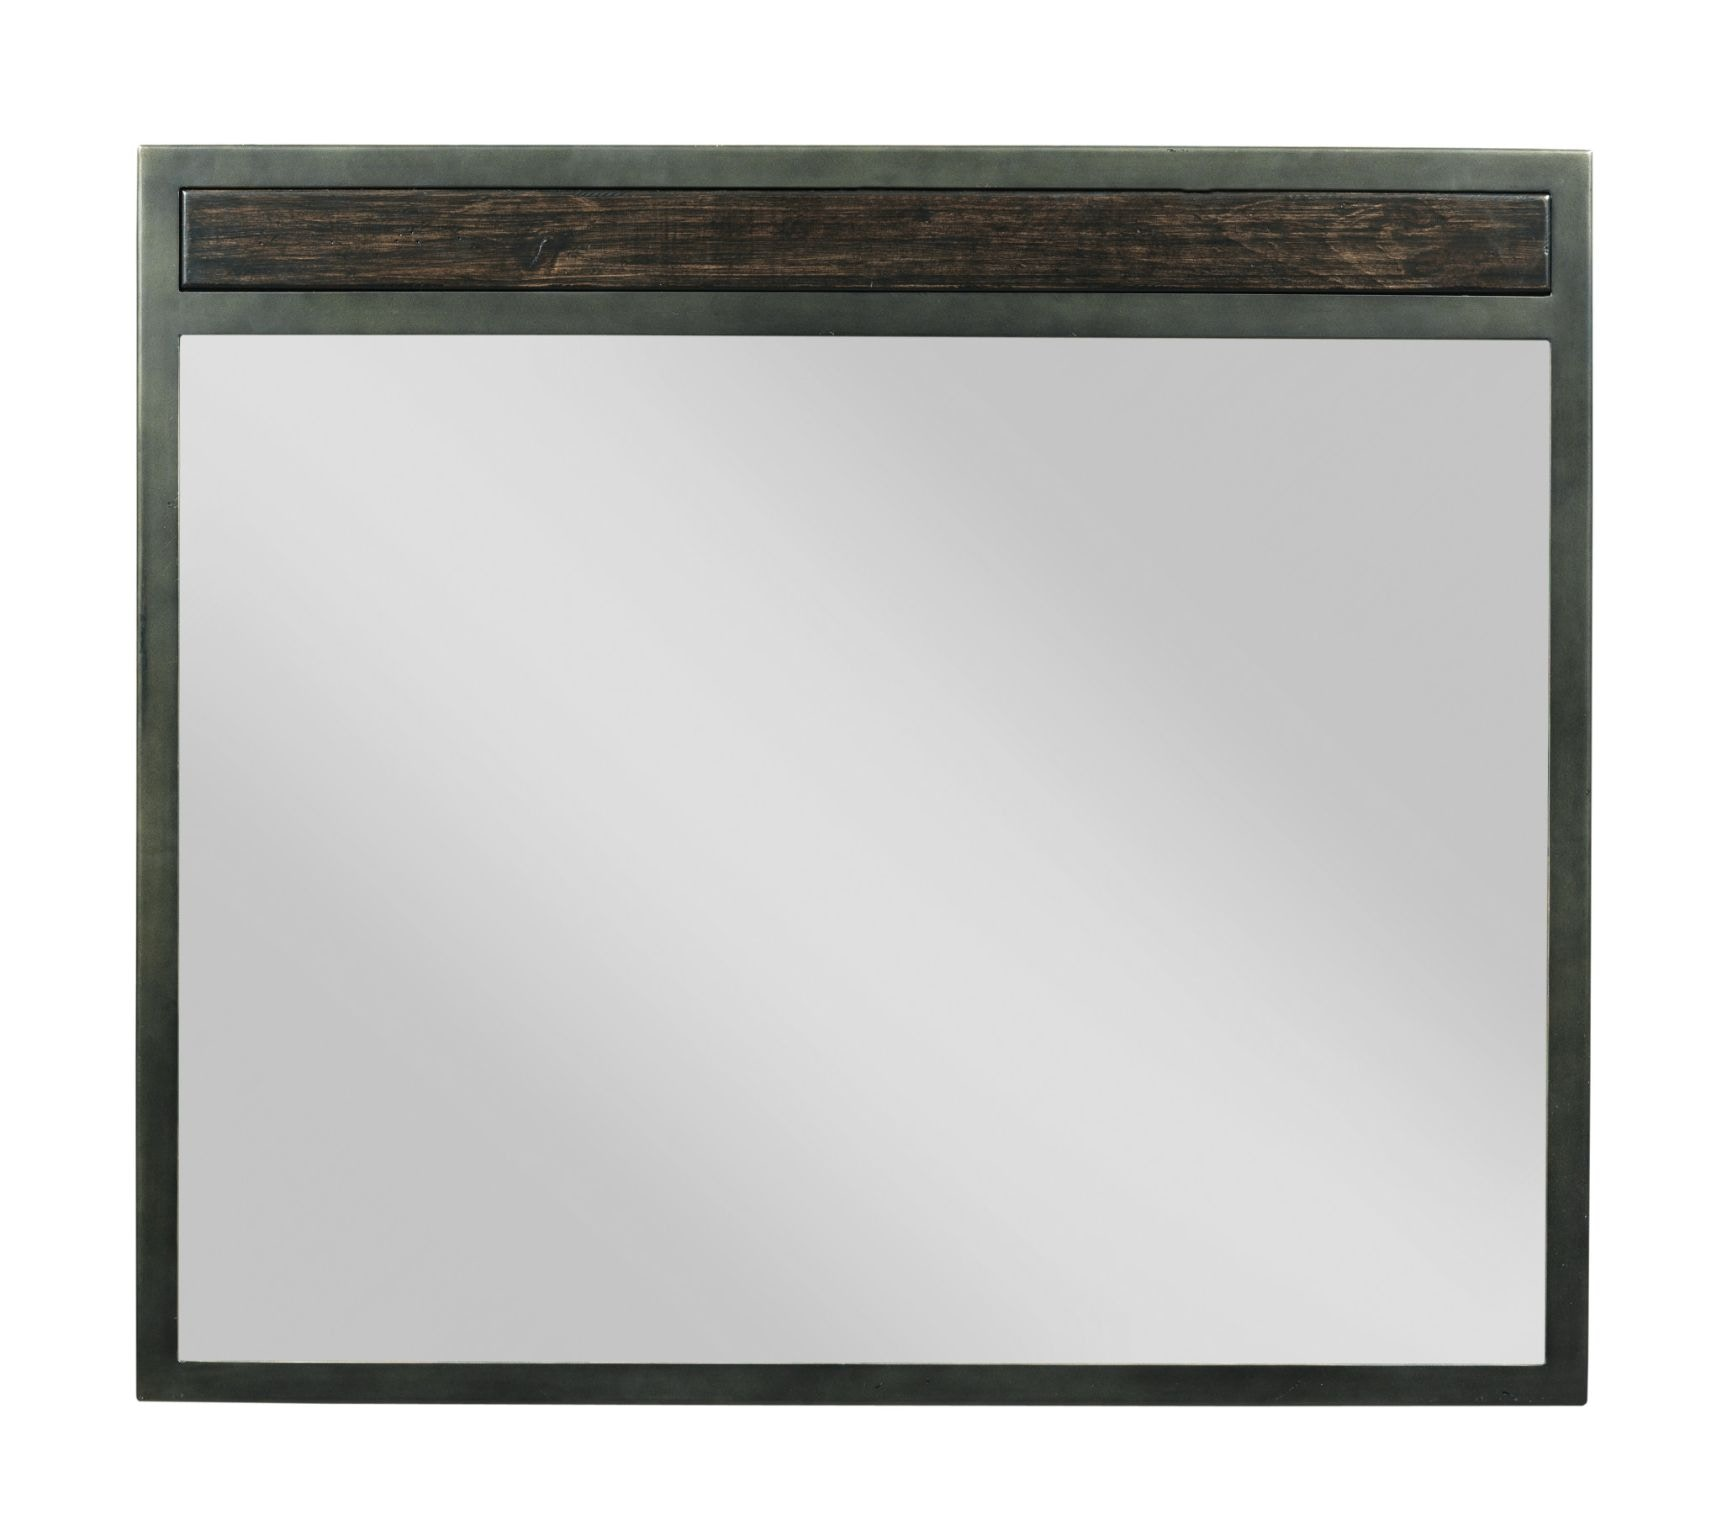 Kincaid Furniture Shelley Mirror 706 020C